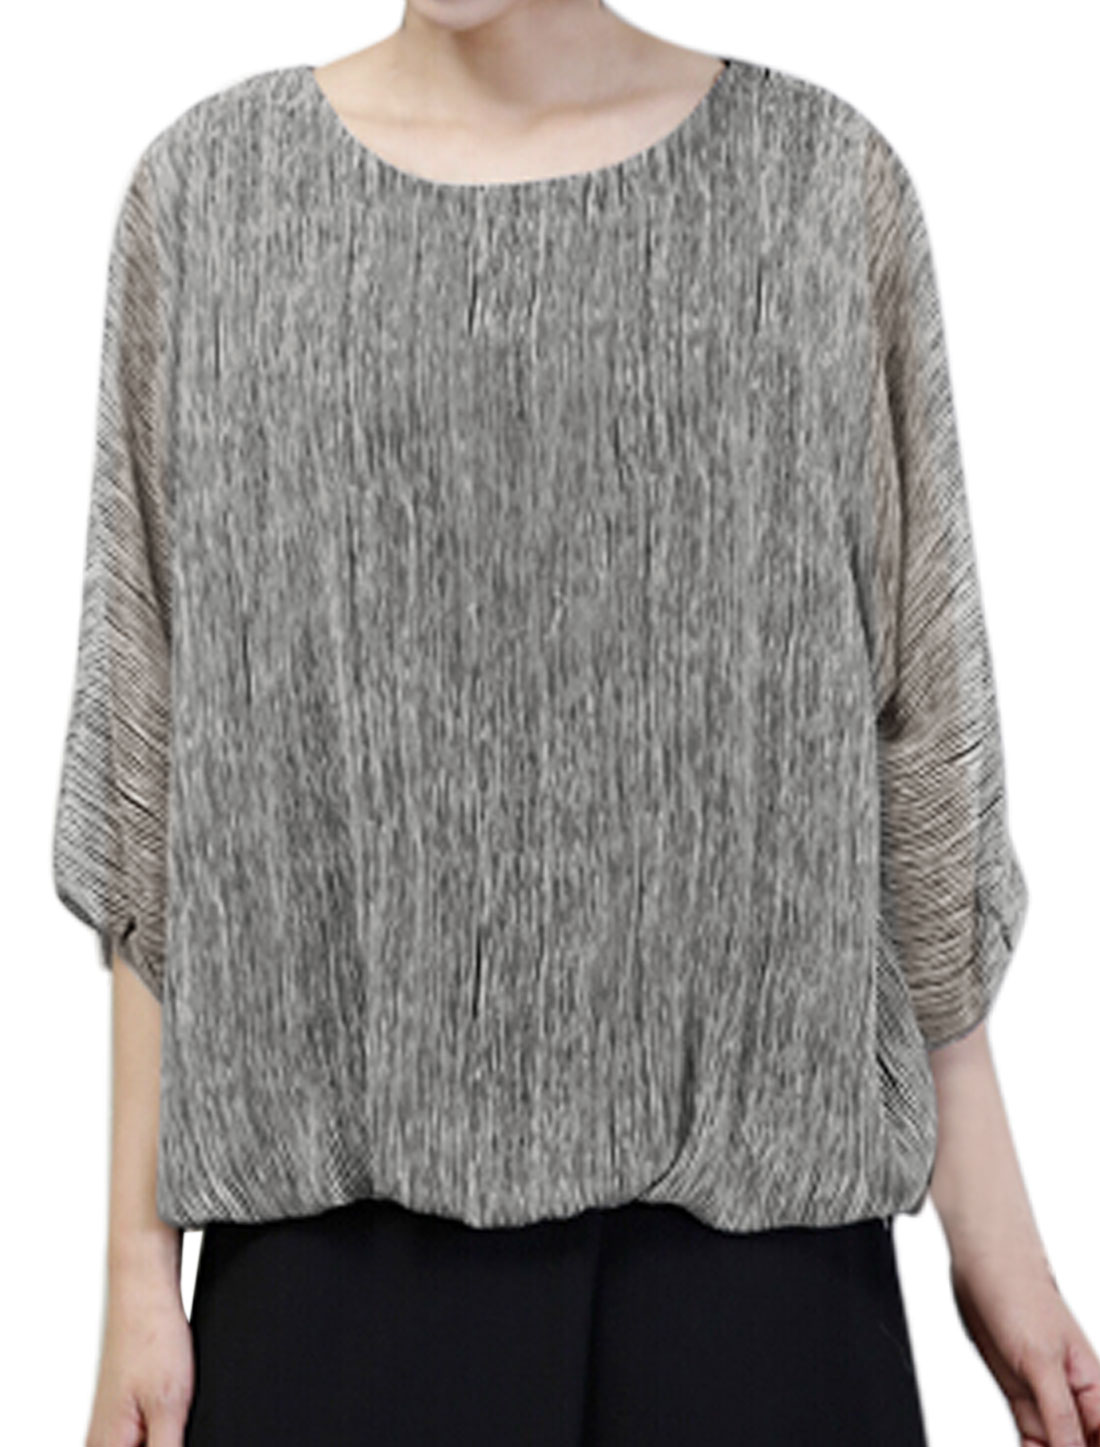 Women Round Neck Batwing Sleeves Stripes Prints Loose Blouse Gray Black XS